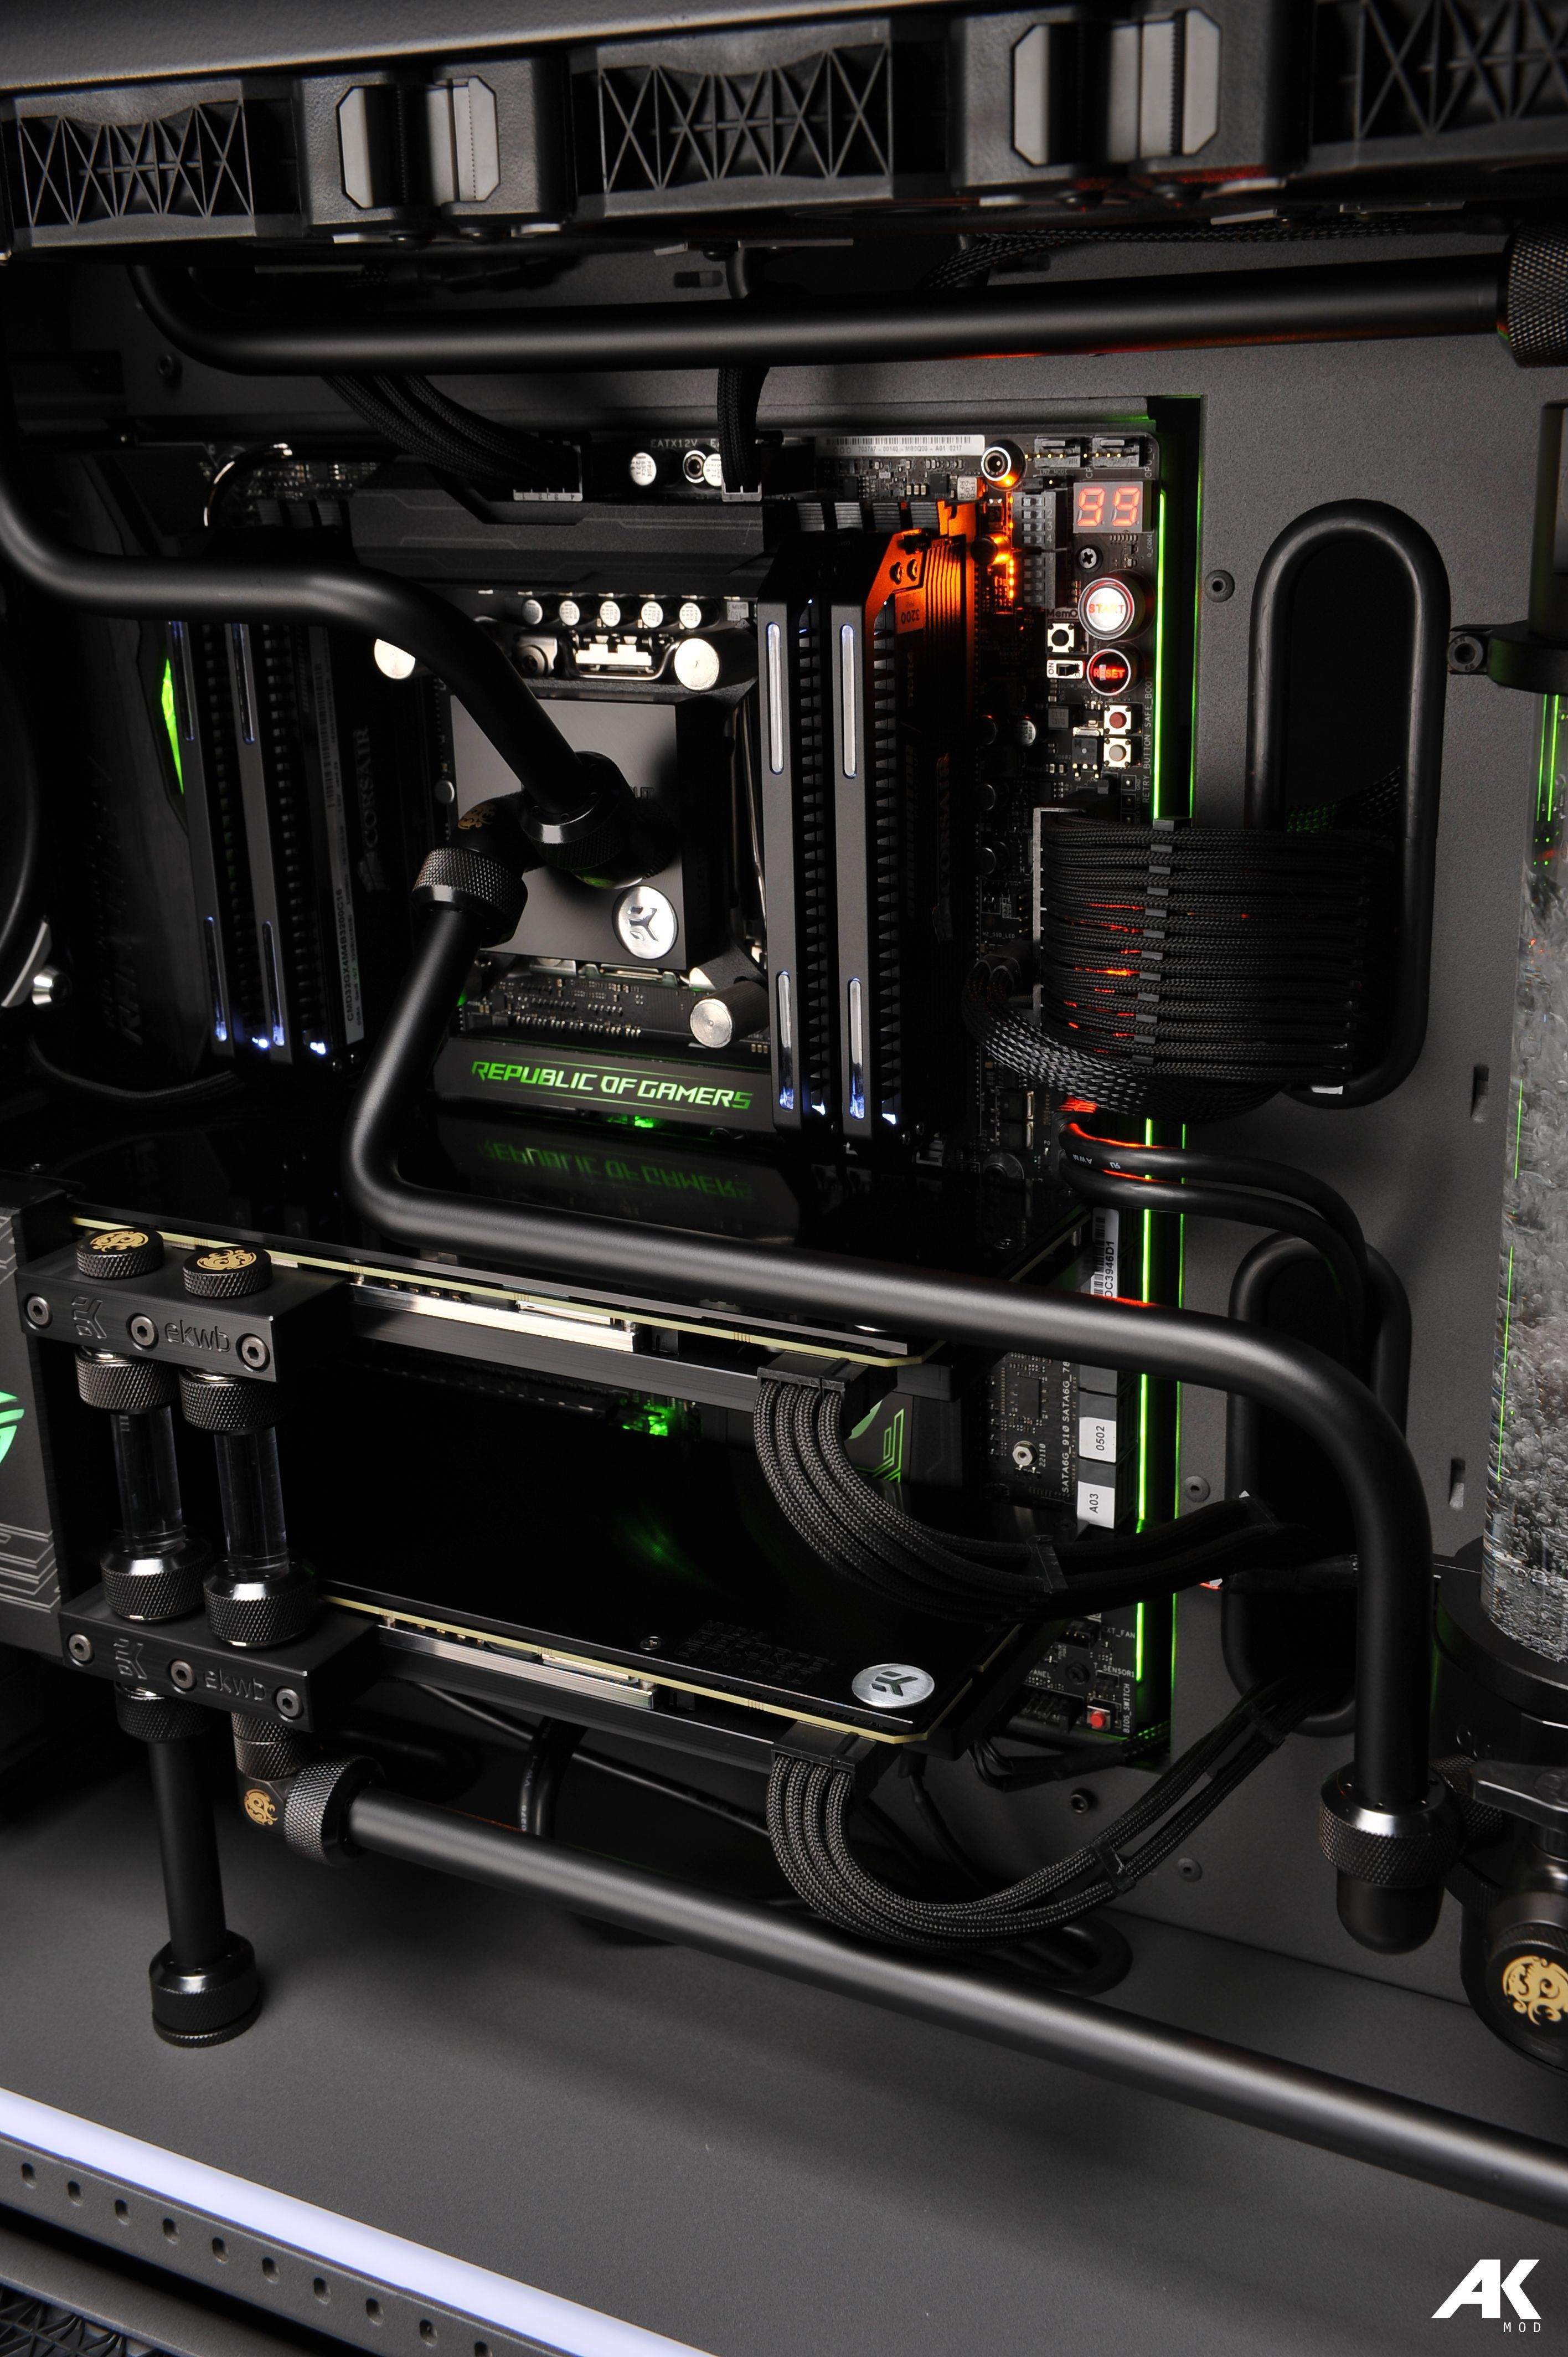 Green Rog The Build Is Inside A Caselabs Sma8 Case Which Is